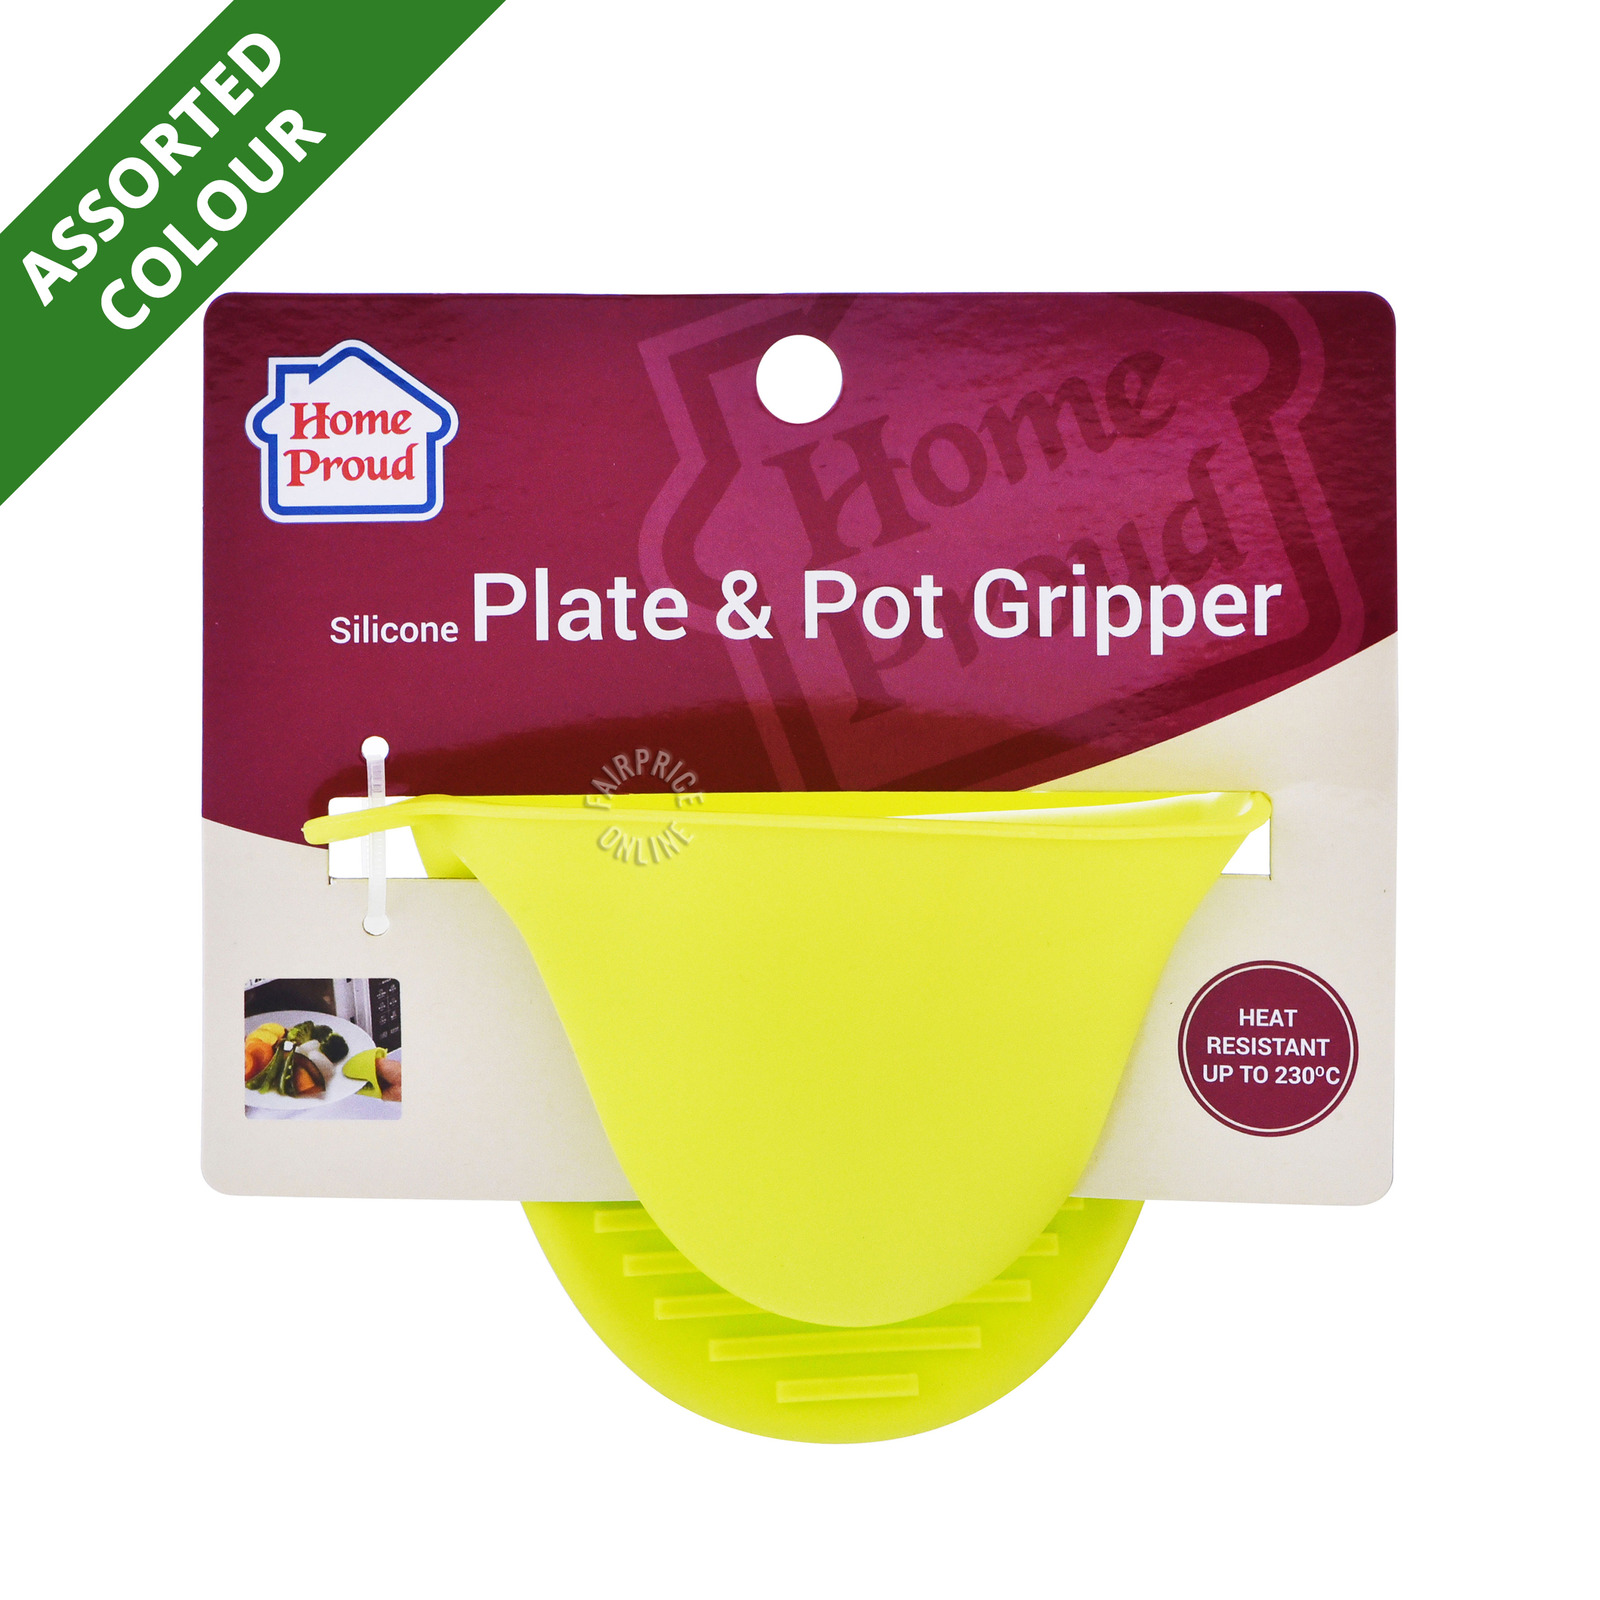 HomeProud Silicone Plate & Pot Gripper